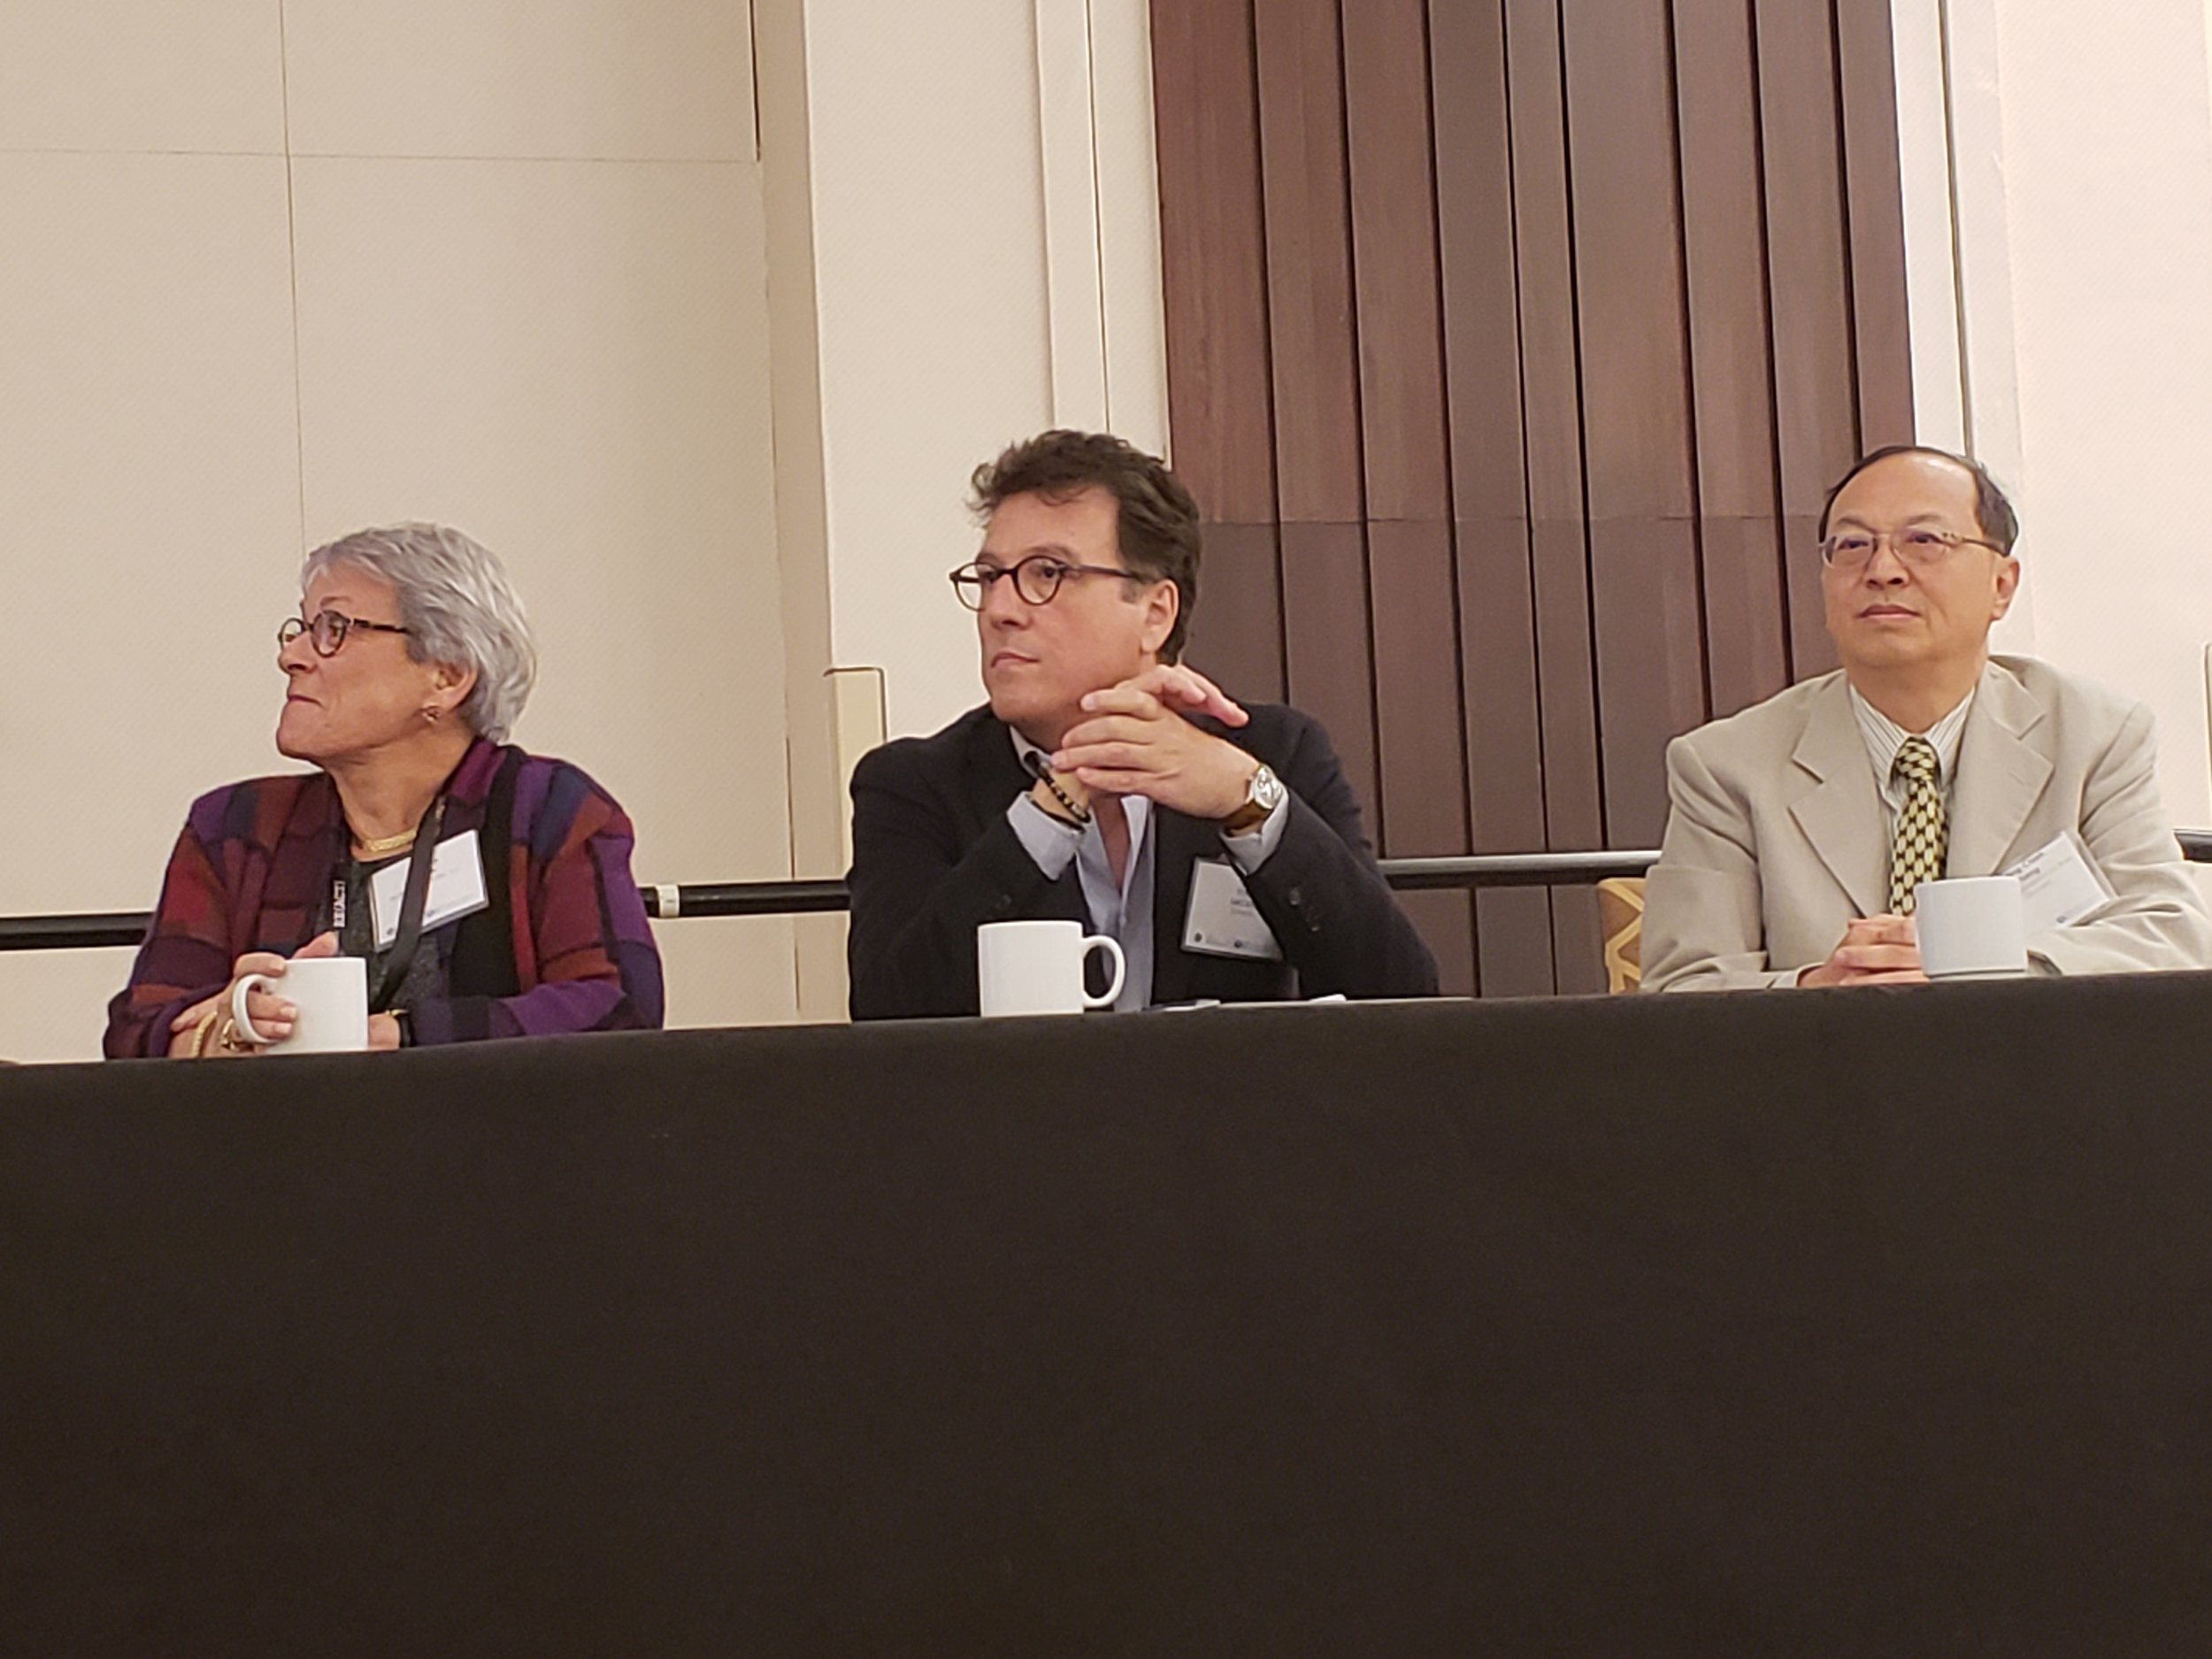 Rare Disease Heroes celebrated at Rare Diseases International/CORD conference this past weekend: Dr. Marlene Haffner, Former FDA Director of Orphan Product Development, Yann Le Cam, CEO of EURODIS Dr. Min-Chieh Tseng, Co-founder of Taiwan Foundation for Rare Disorders